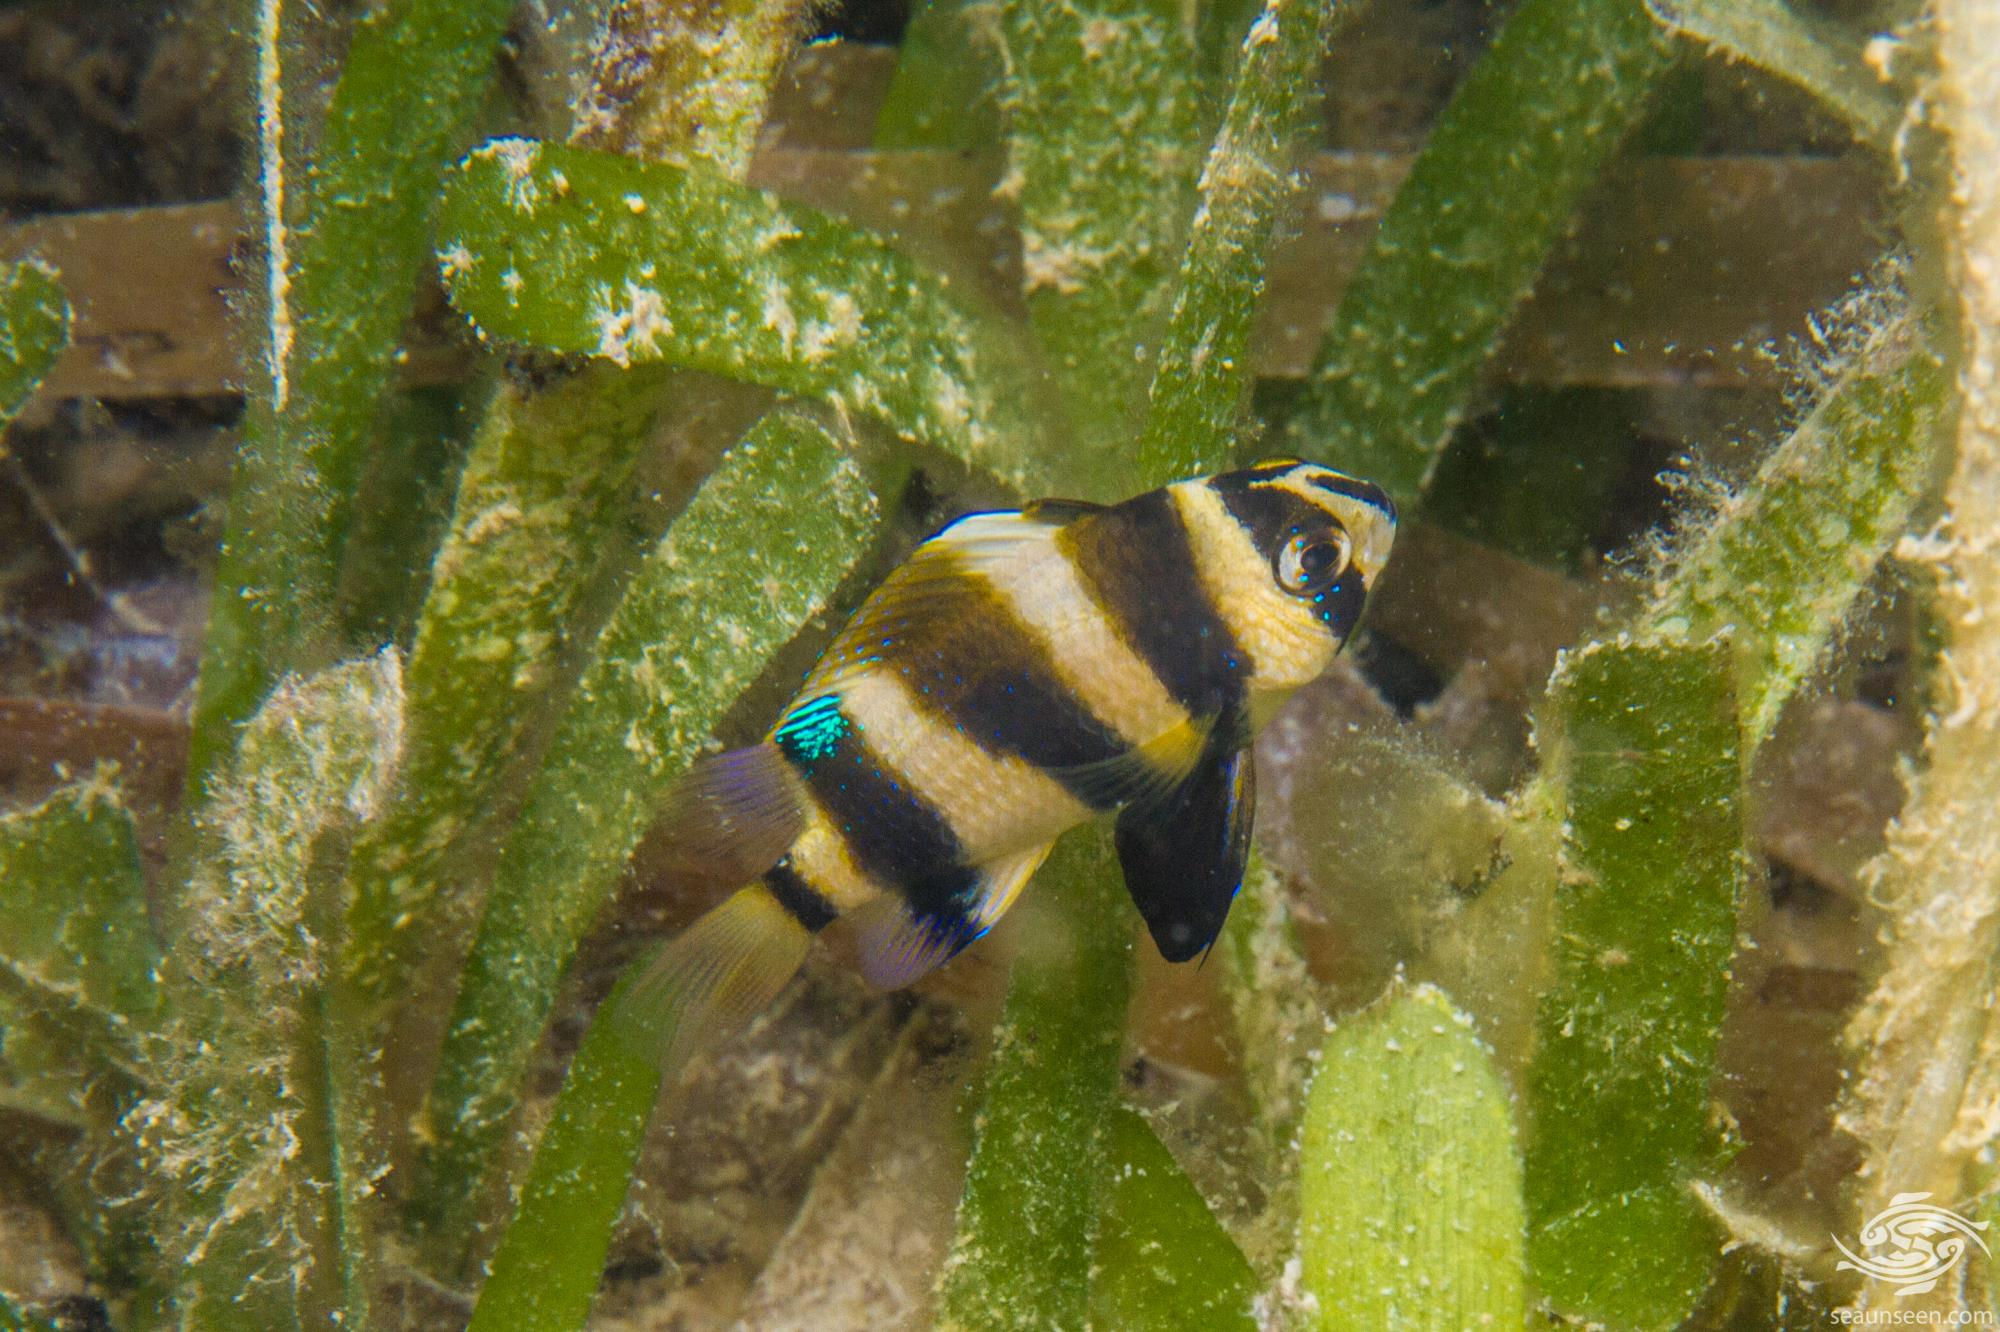 Tiger Damselfish (Chrysiptera annulata) is also known as the Footballer demoiselle